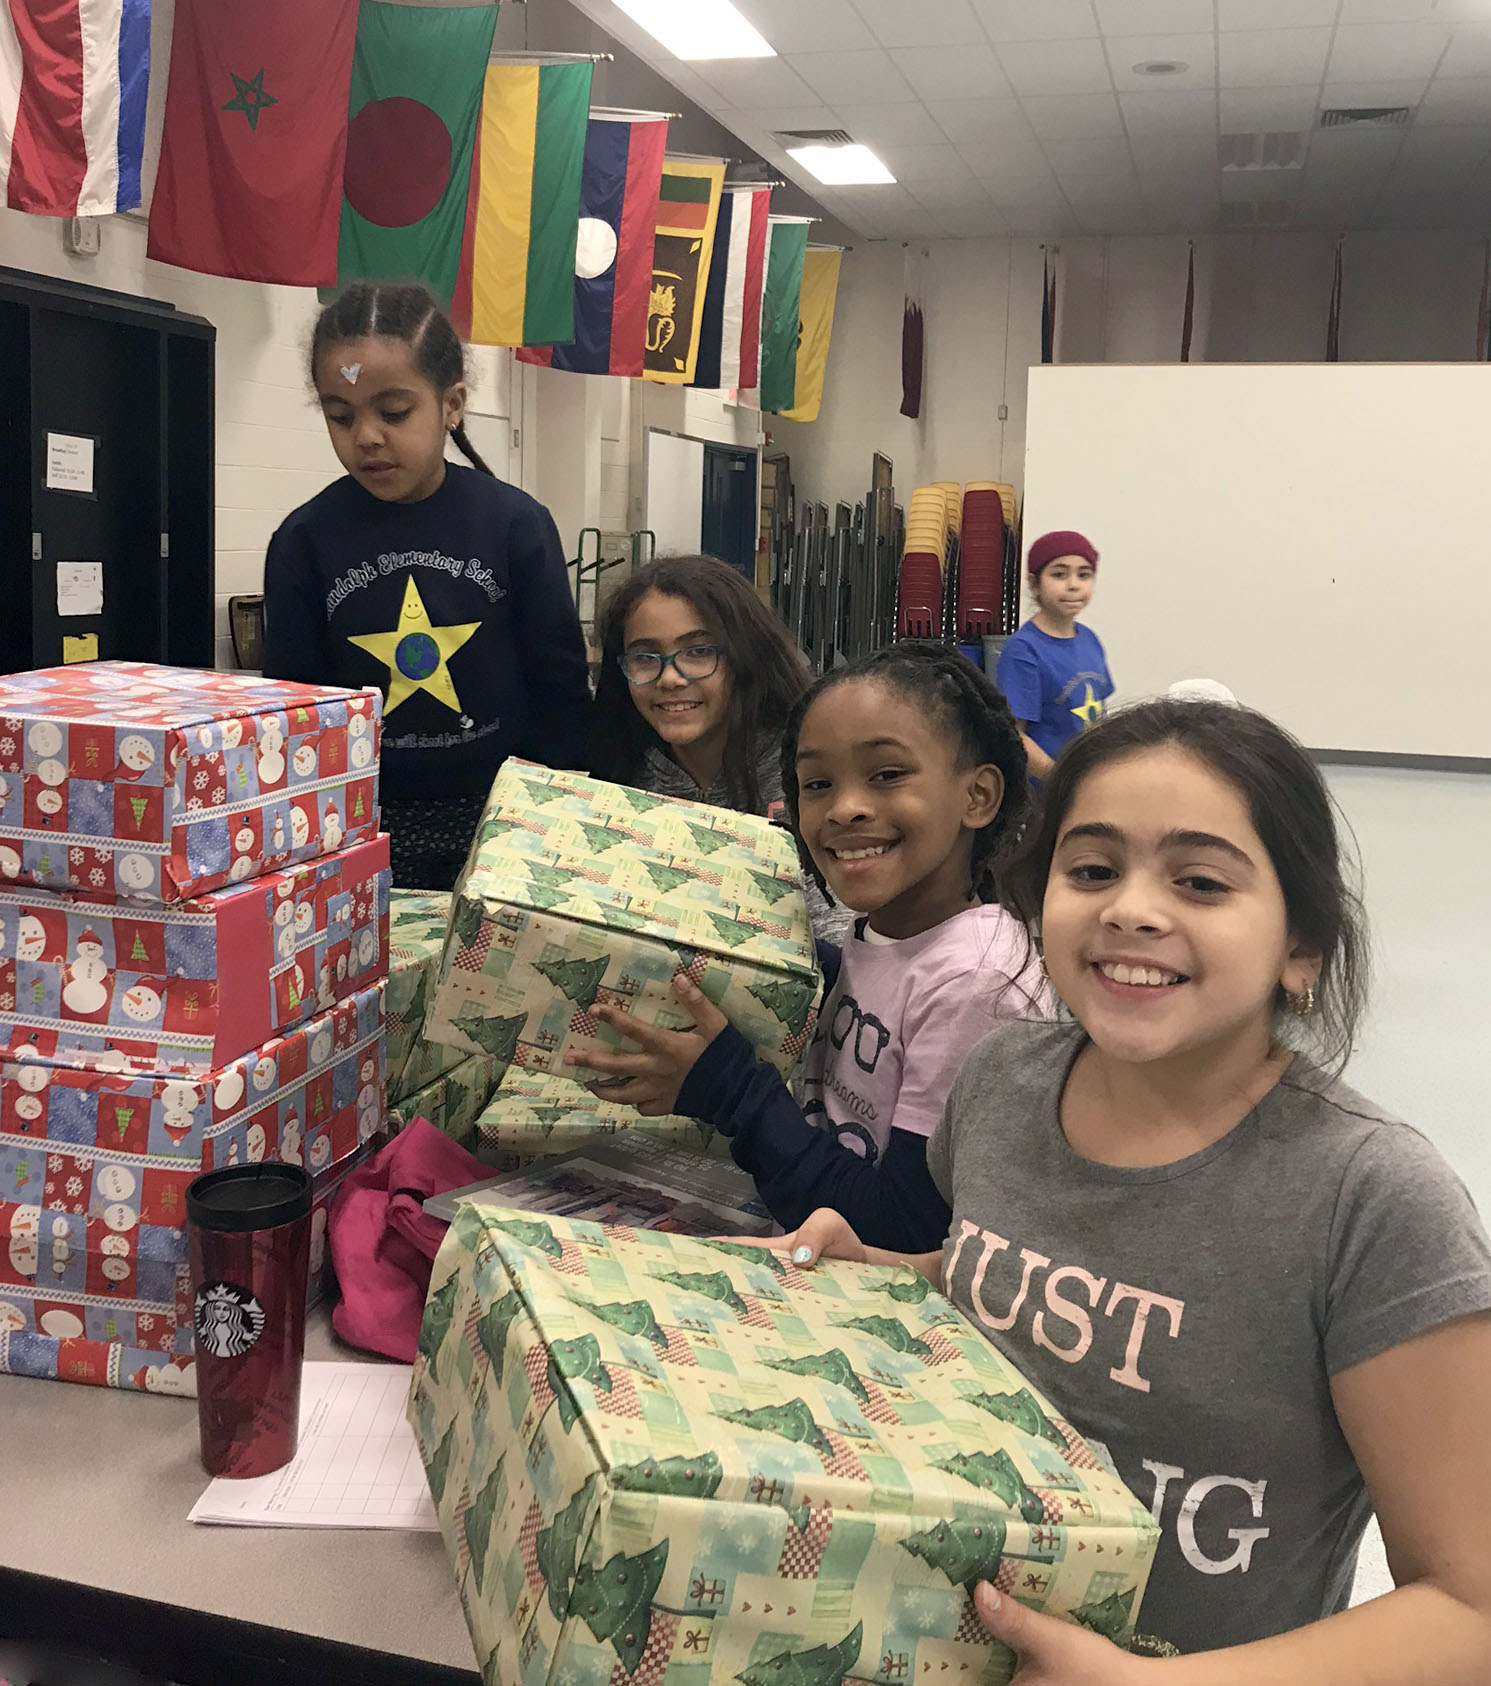 girl scout troop 6252 from Randolph Elementary School in Arlington assembled 11 boxes as one of the community service projects they voted to do this year to help their neighbors in need. photo by divya swamy.